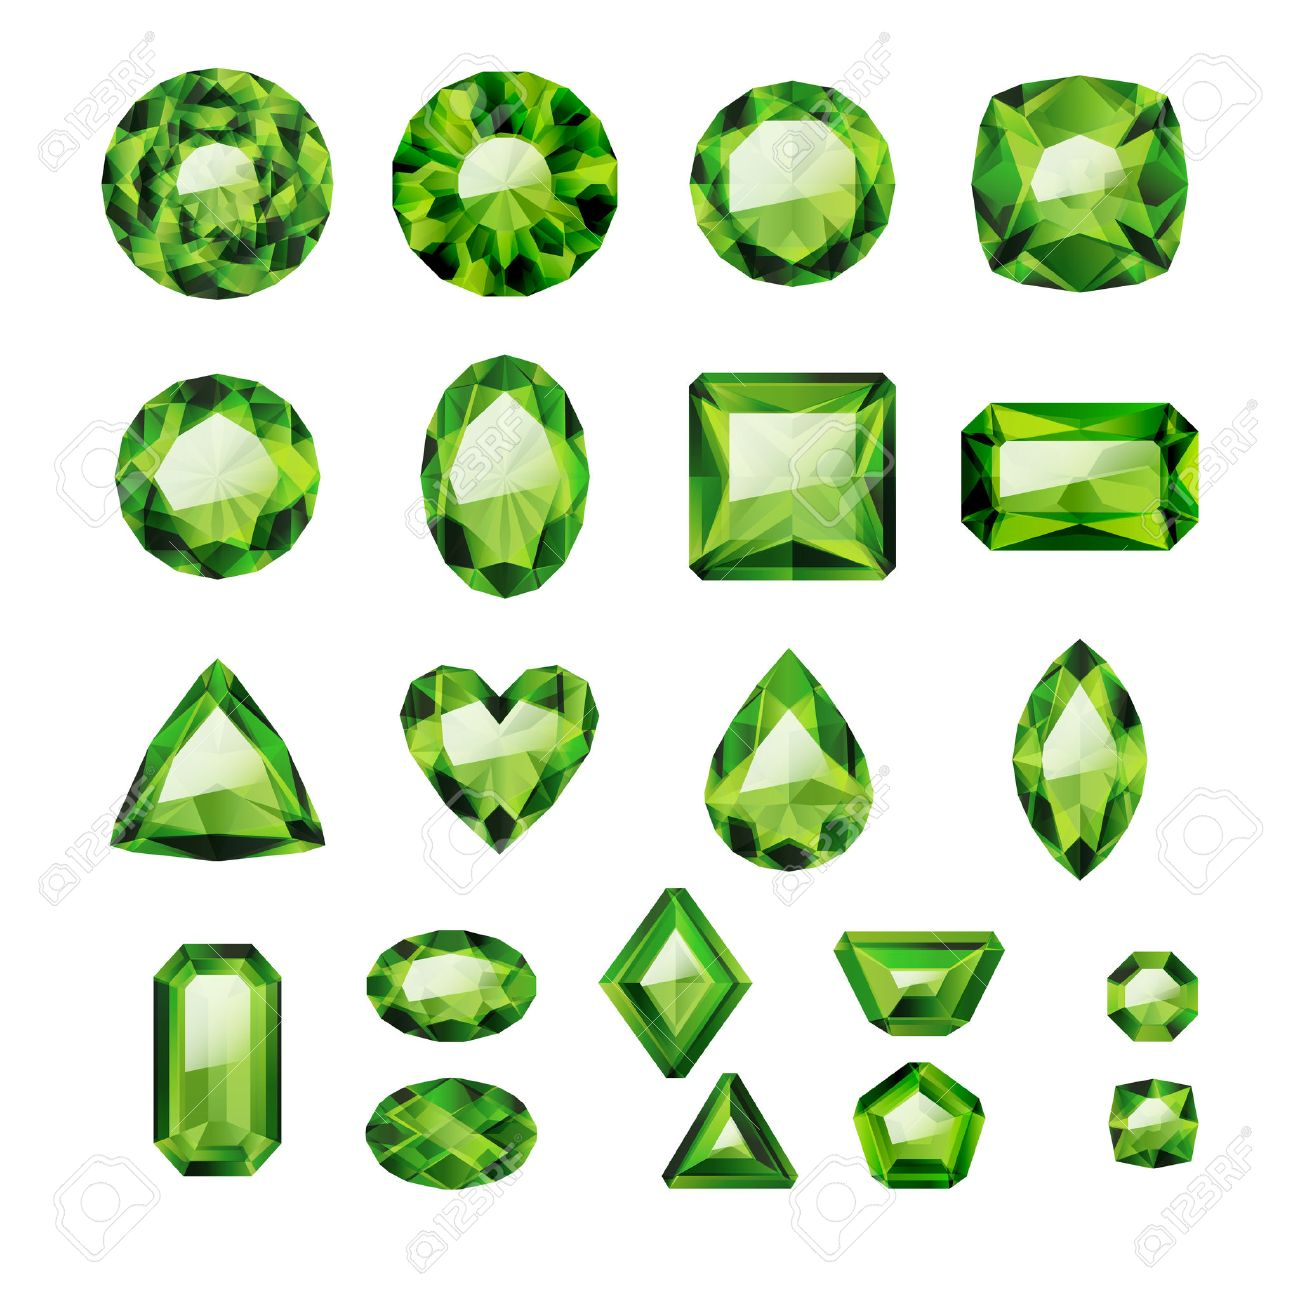 Set of realistic green jewels. Colorful gemstones. Green emeralds isolated on white background. - 54198879